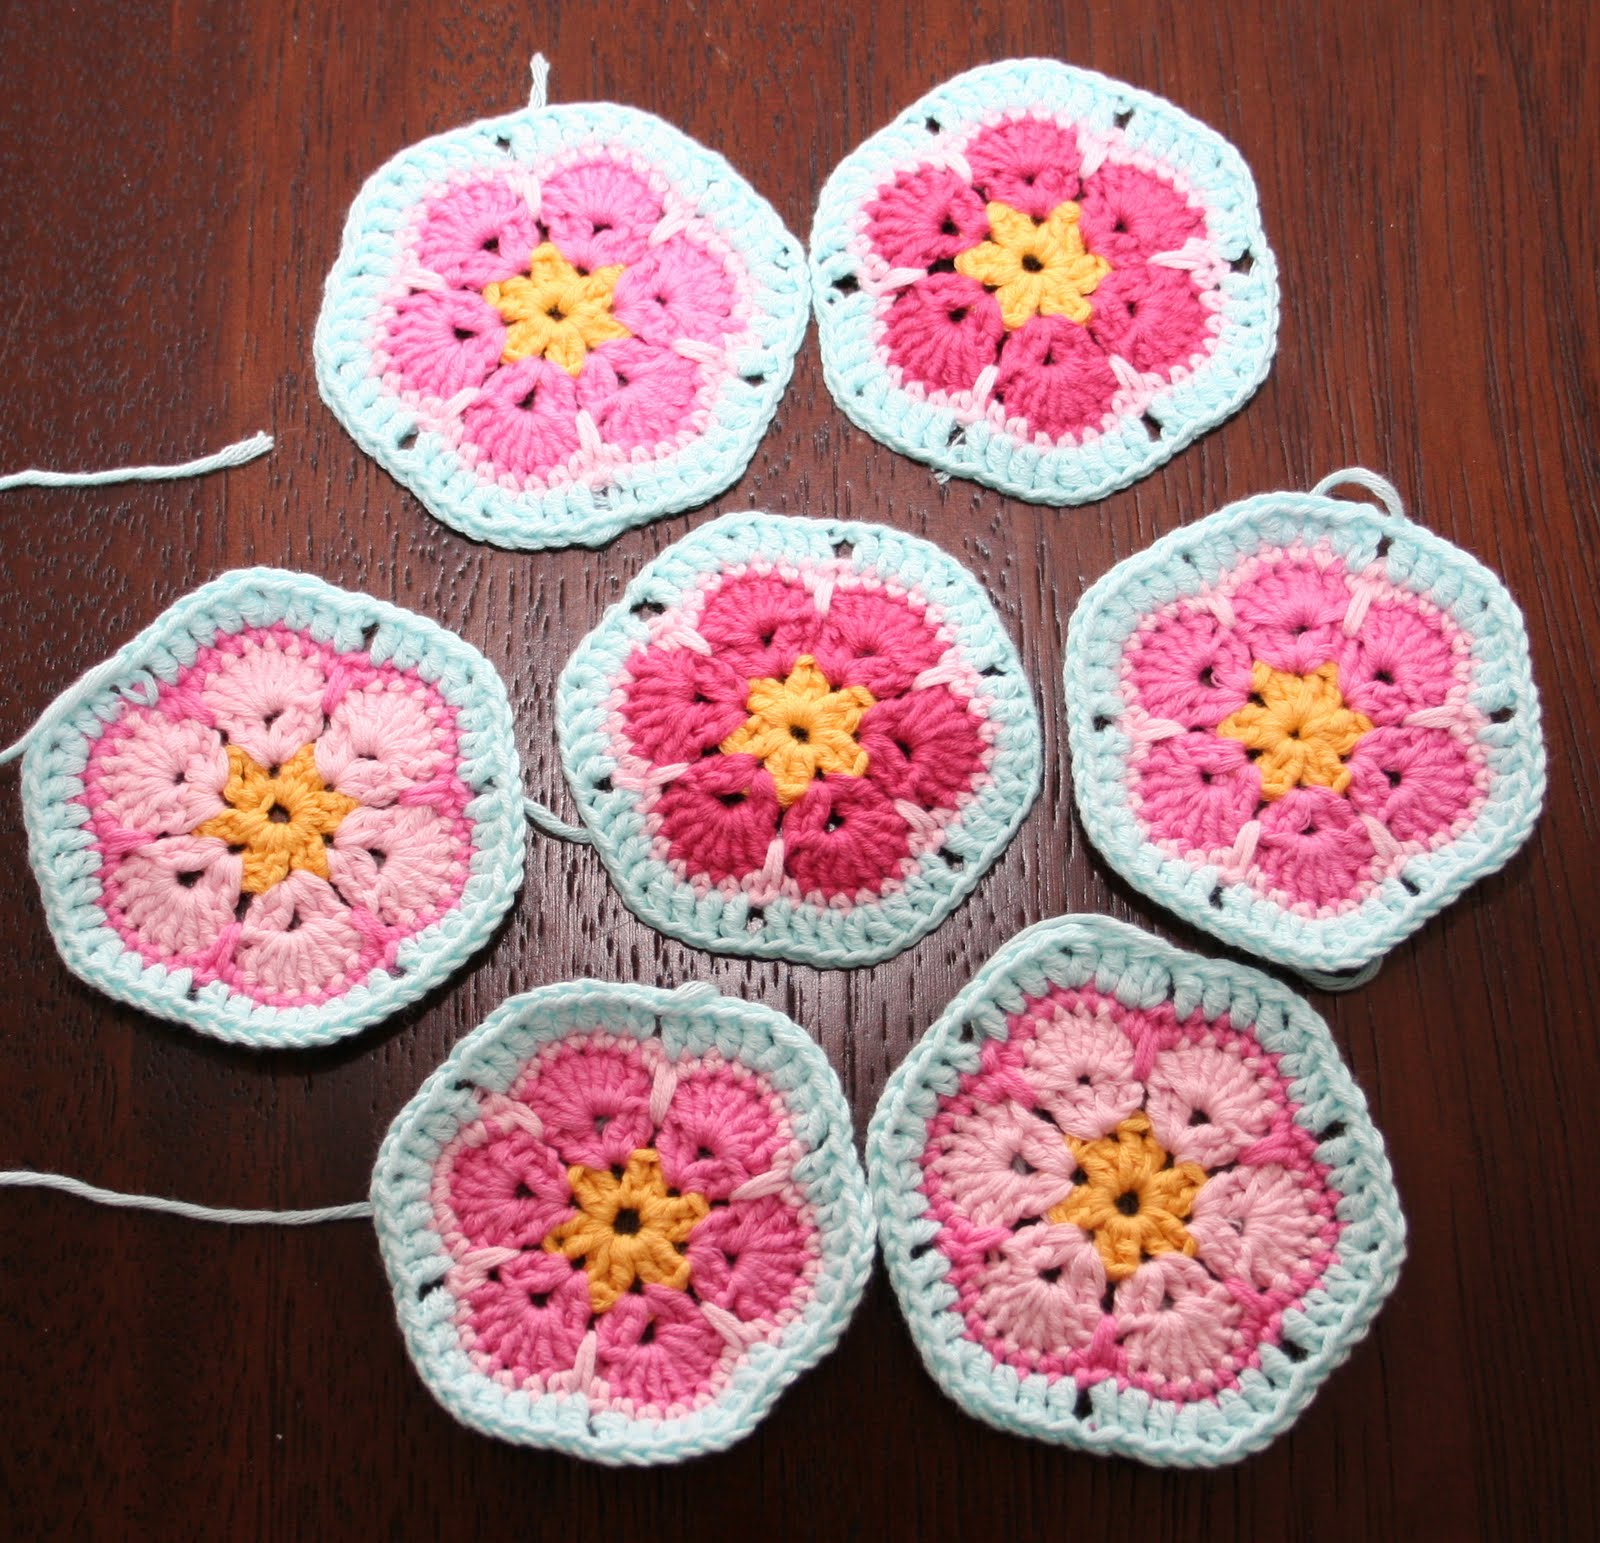 Crochet African Flower Pattern Free : AFRICAN CROCHET PATTERNS Free Patterns